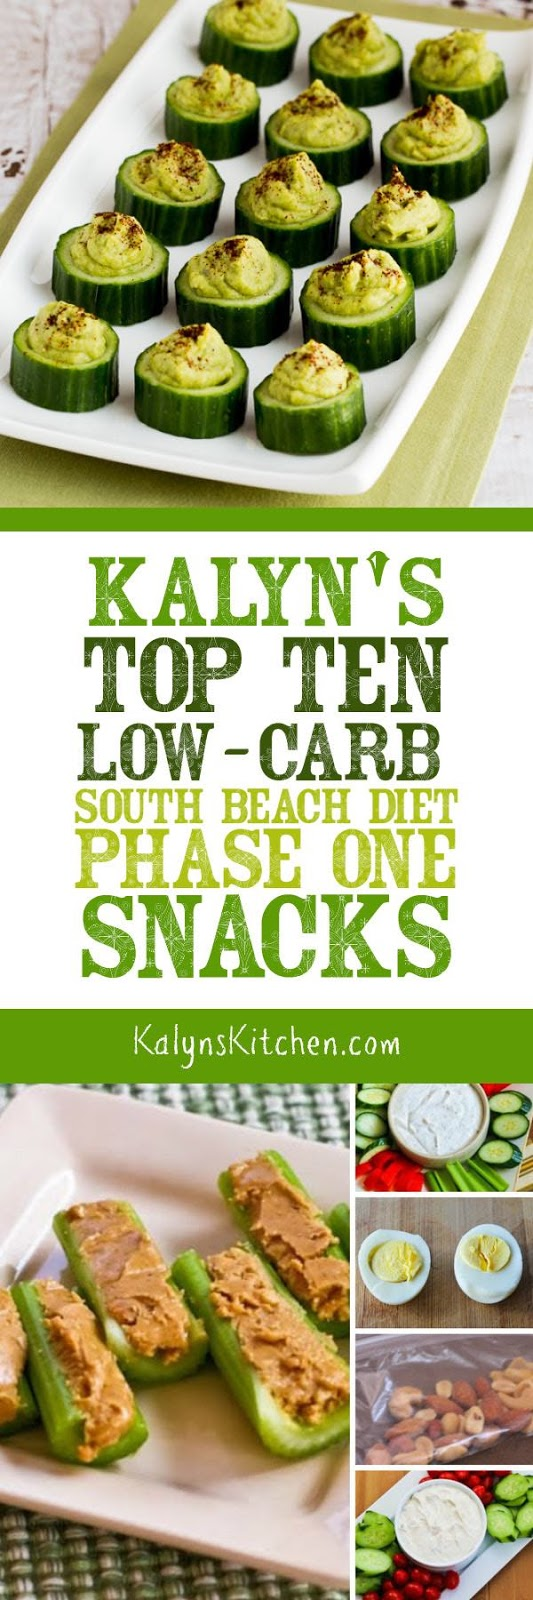 If You Have An Idea For A Tasty Low Carb Snack That S Not Mentioned Here We Would Love To Hear About It In The Comments